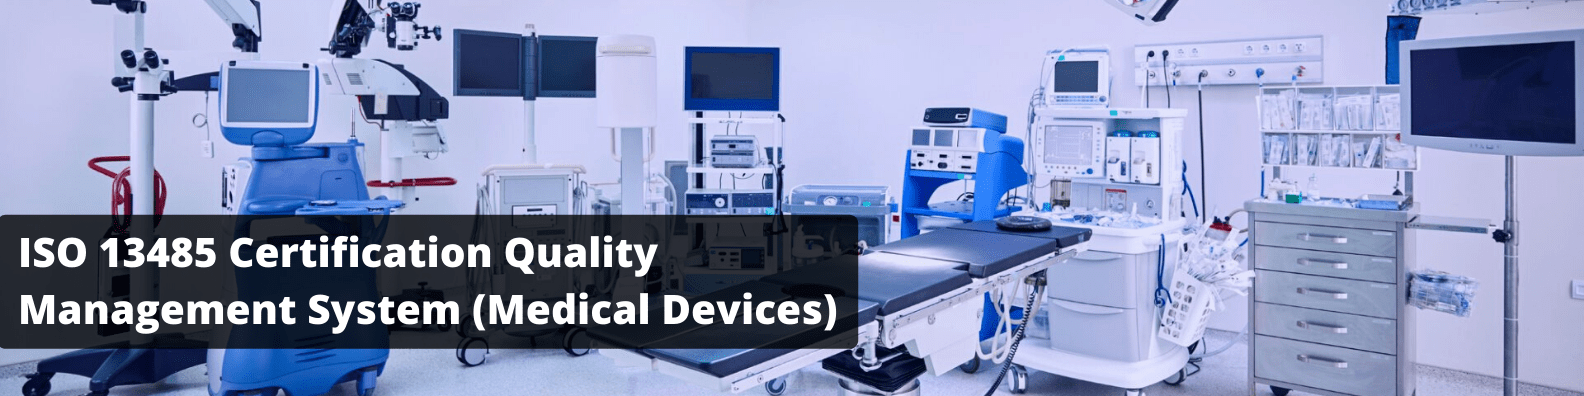 ISO 13485 Certification Quality Management System (Medical Devices)